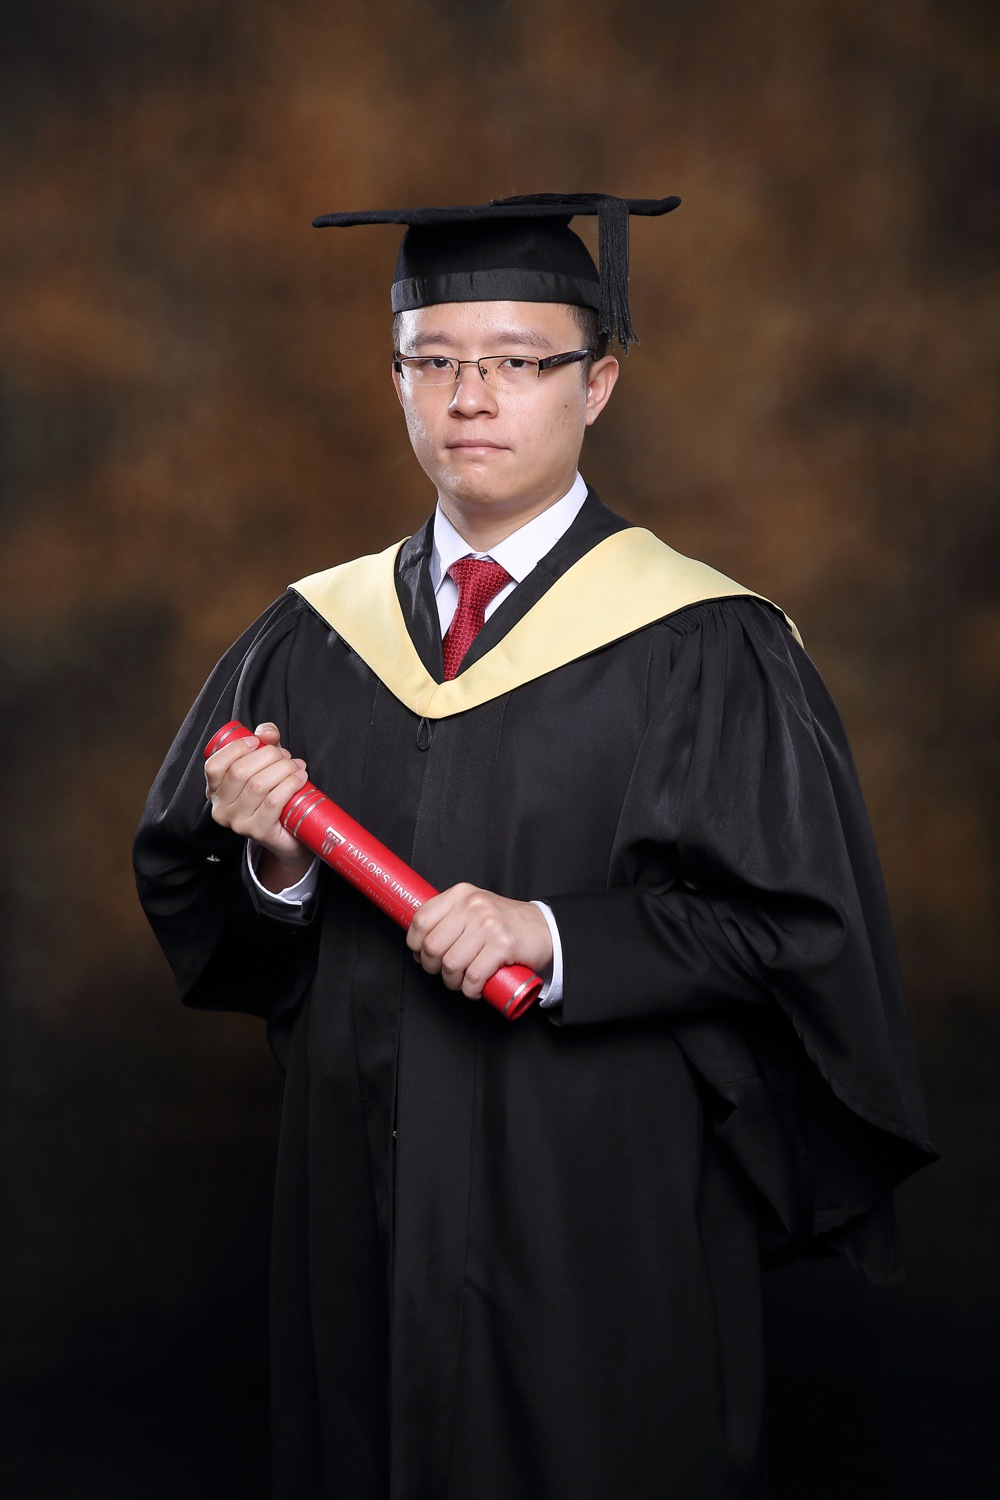 Graduation photography